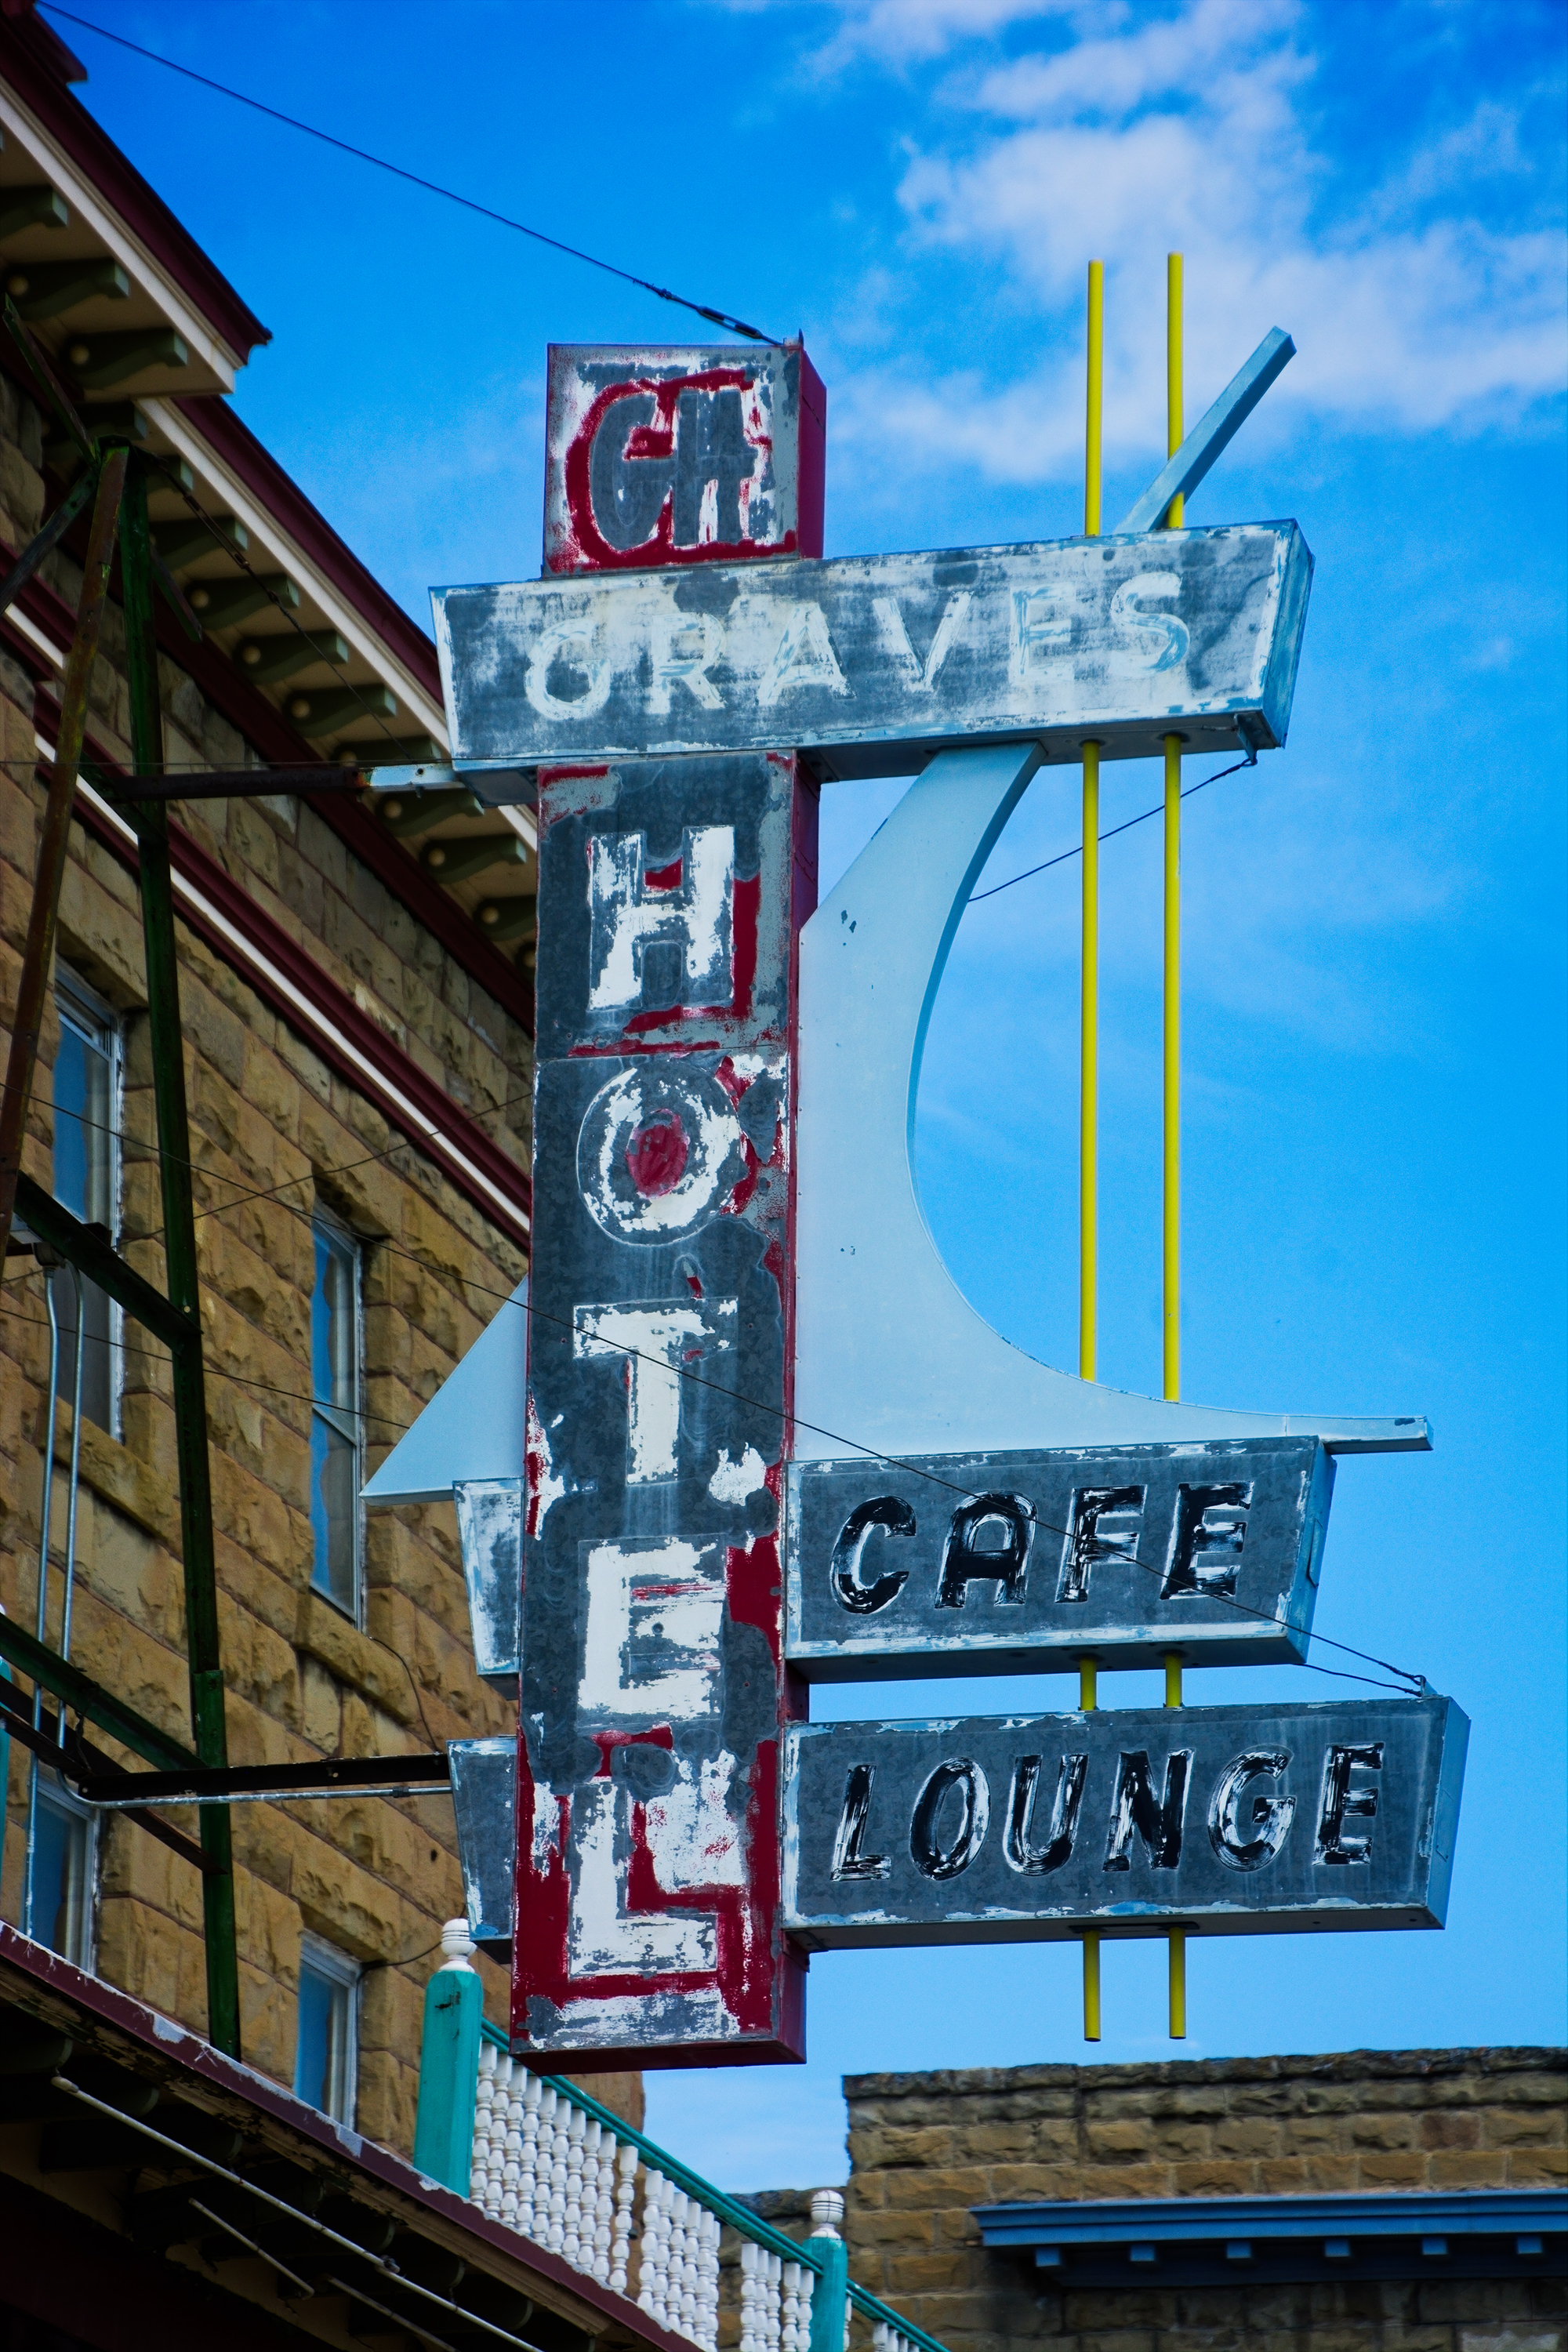 Graves Hotel - 106 Central Avenue South, Harlowton, Montana U.S.A. - July 17, 2017